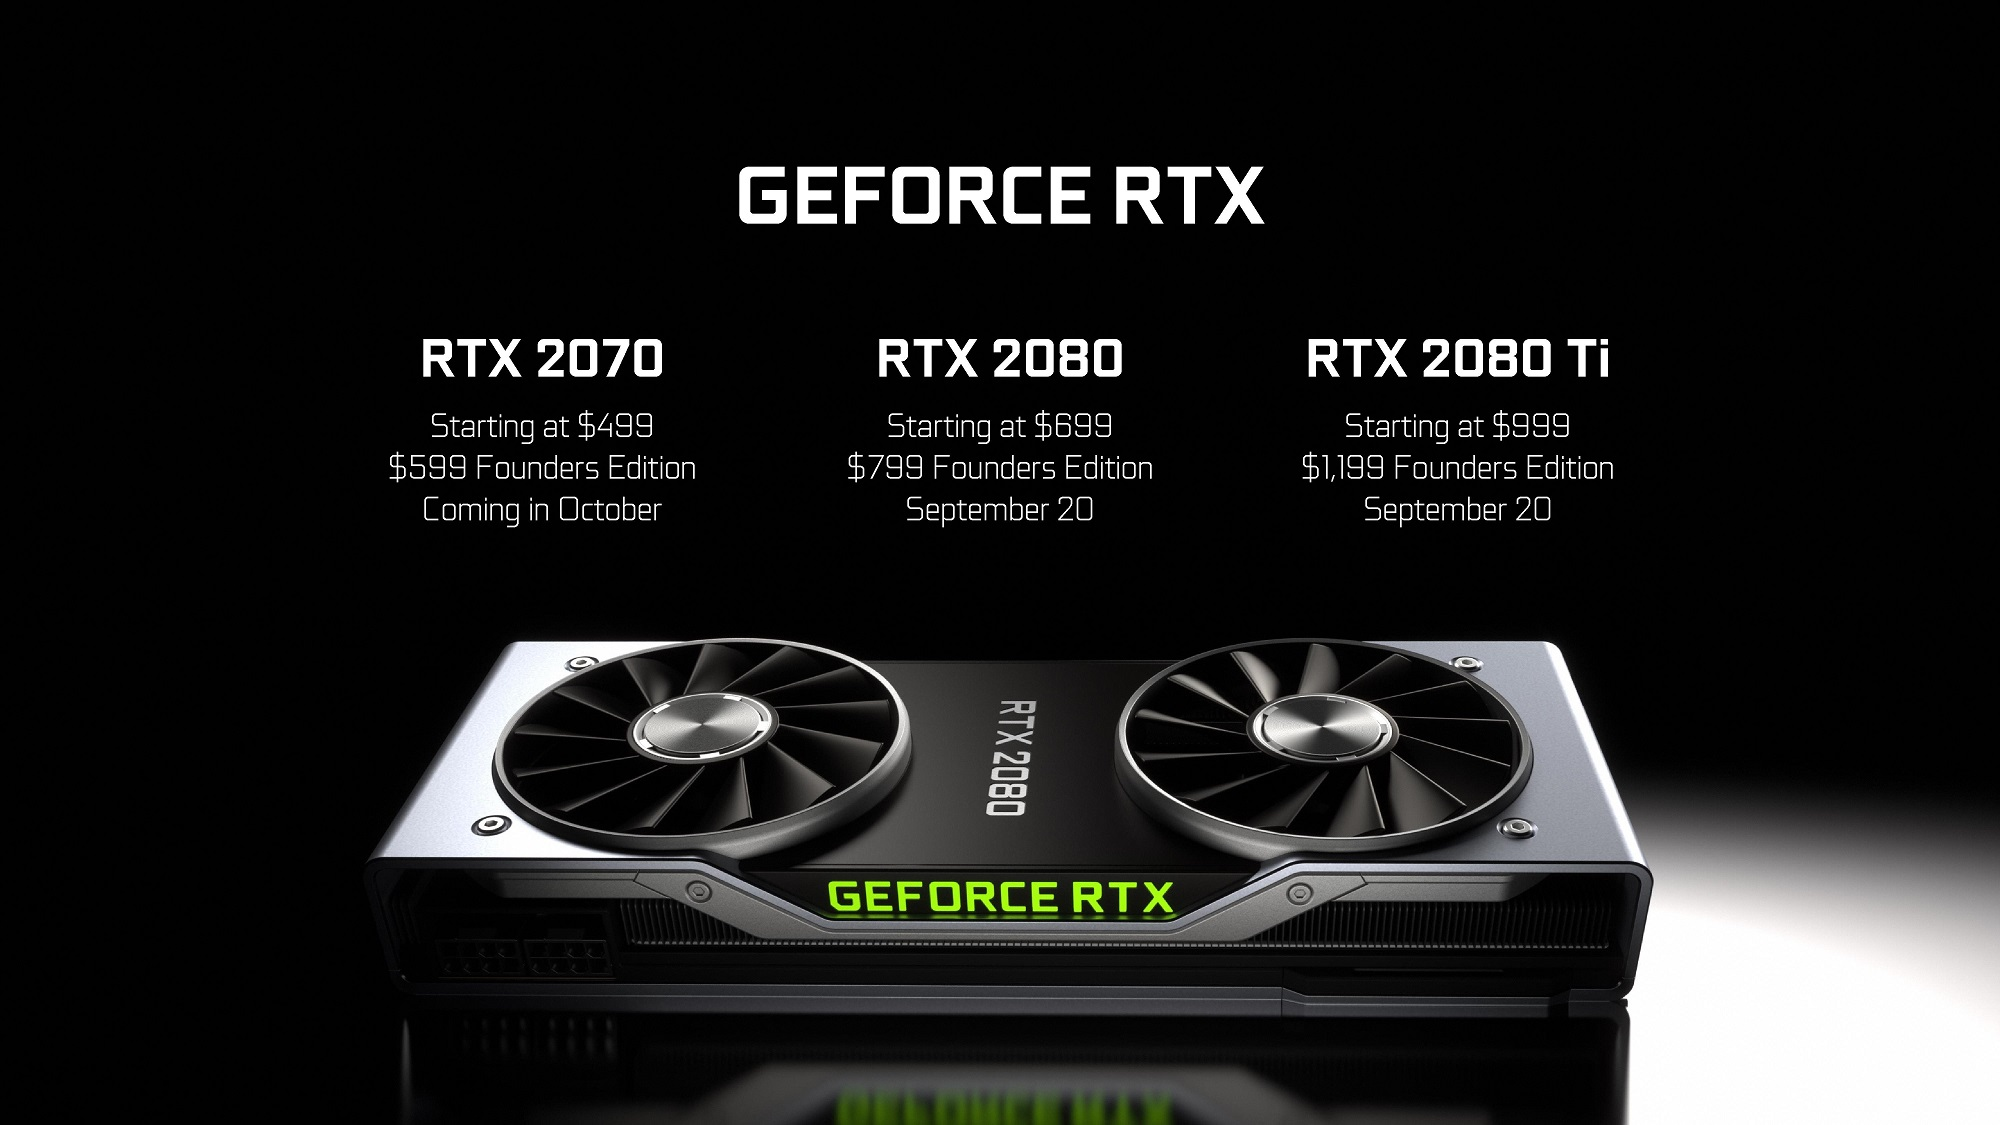 NVIDIA GeForce RTX 2080 Ti Review: No Seriously, Just Buy It